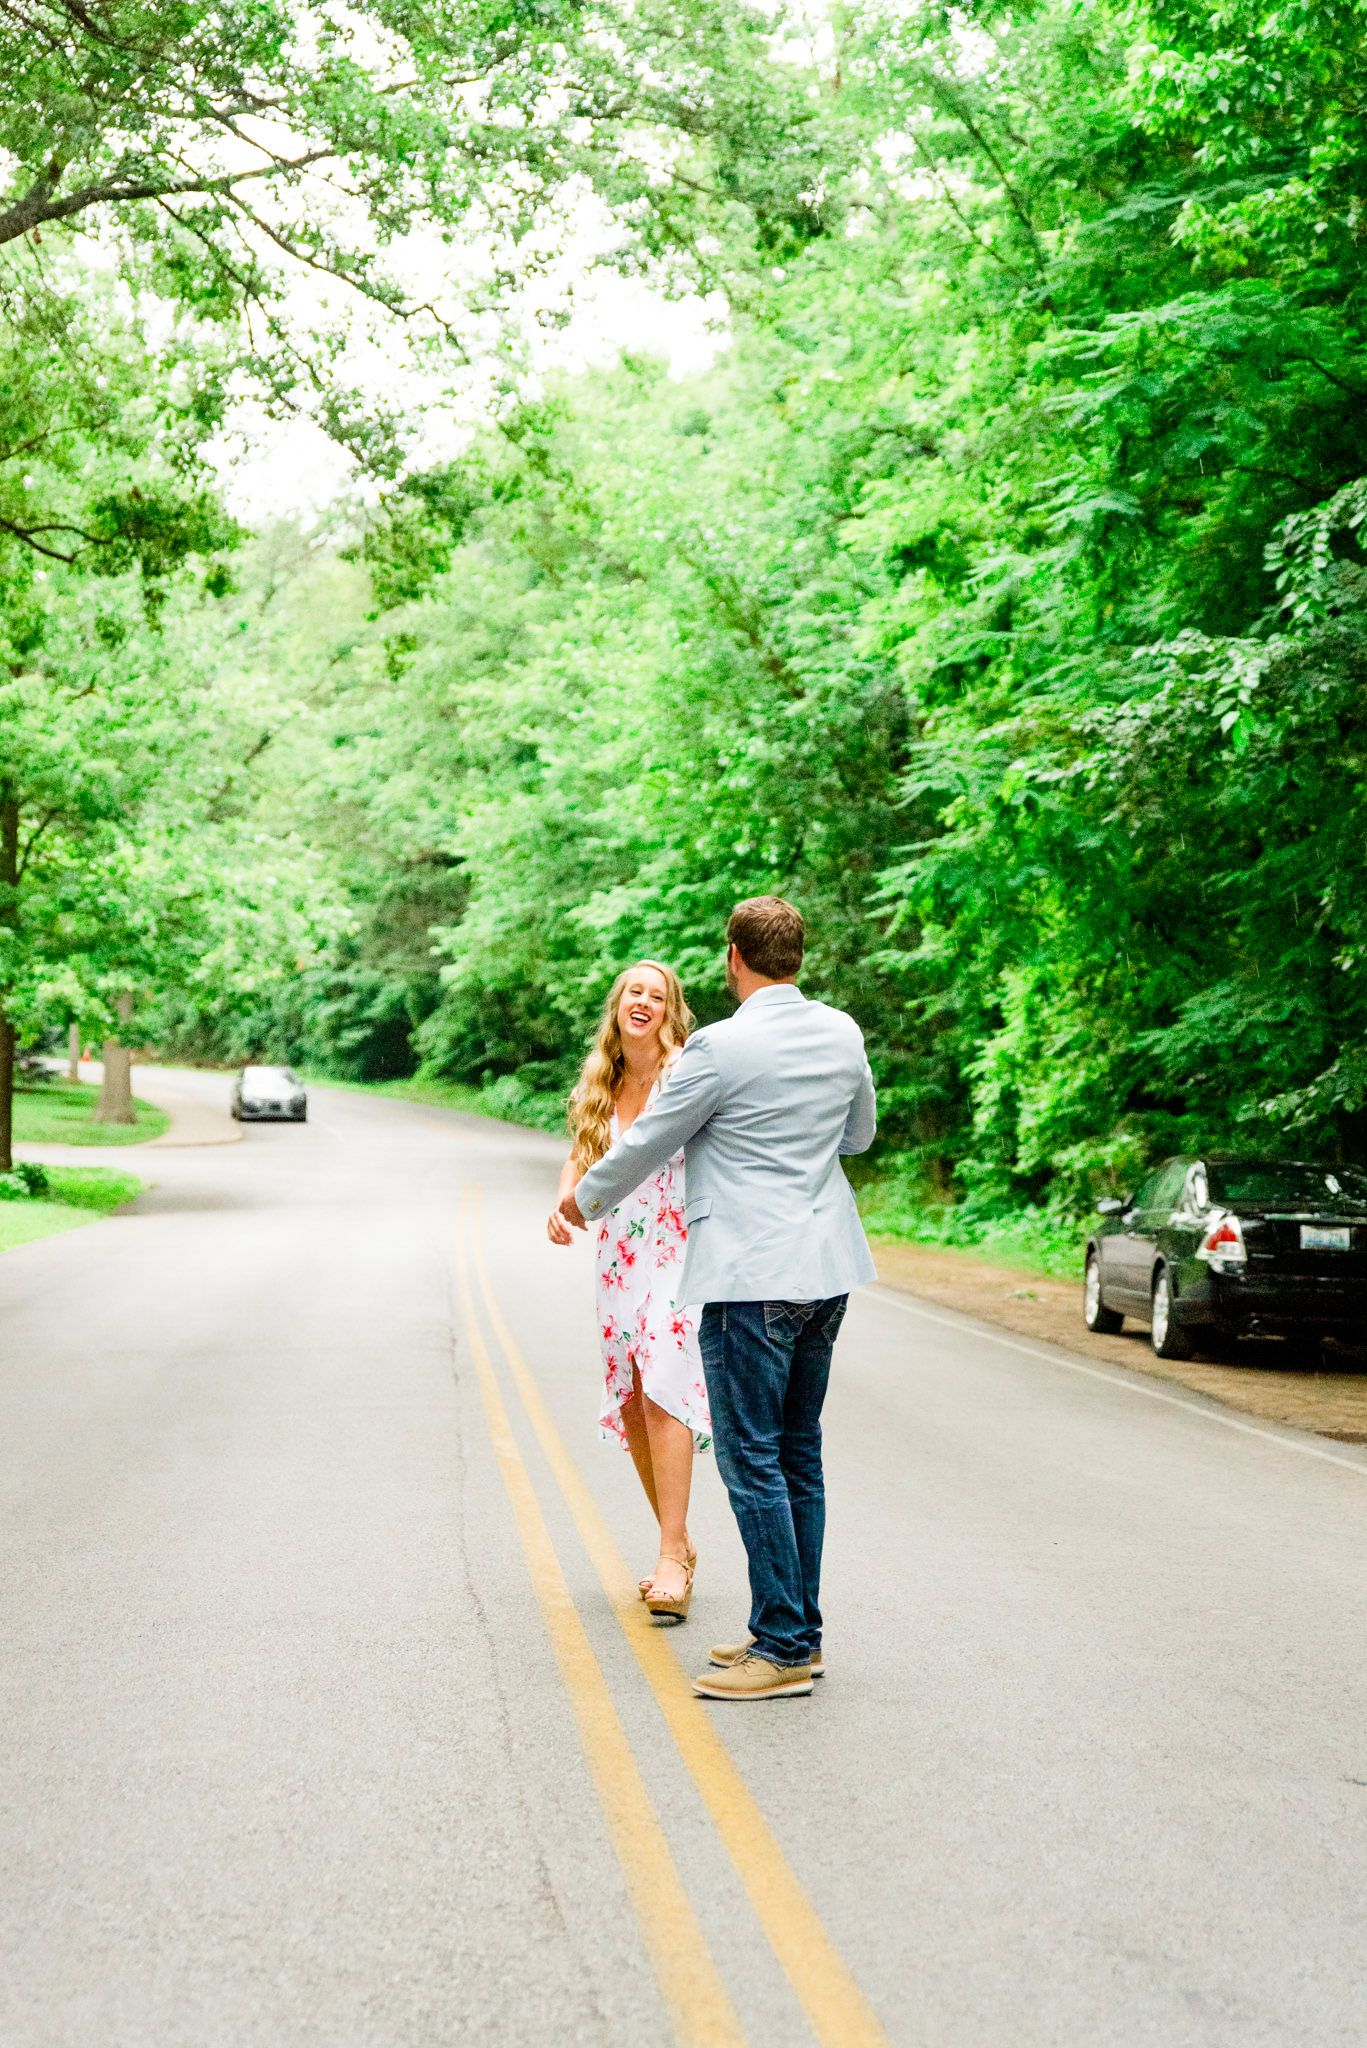 engaged couples in floral dress and light blue suit jacket and jeans dancing in middle of road under trees